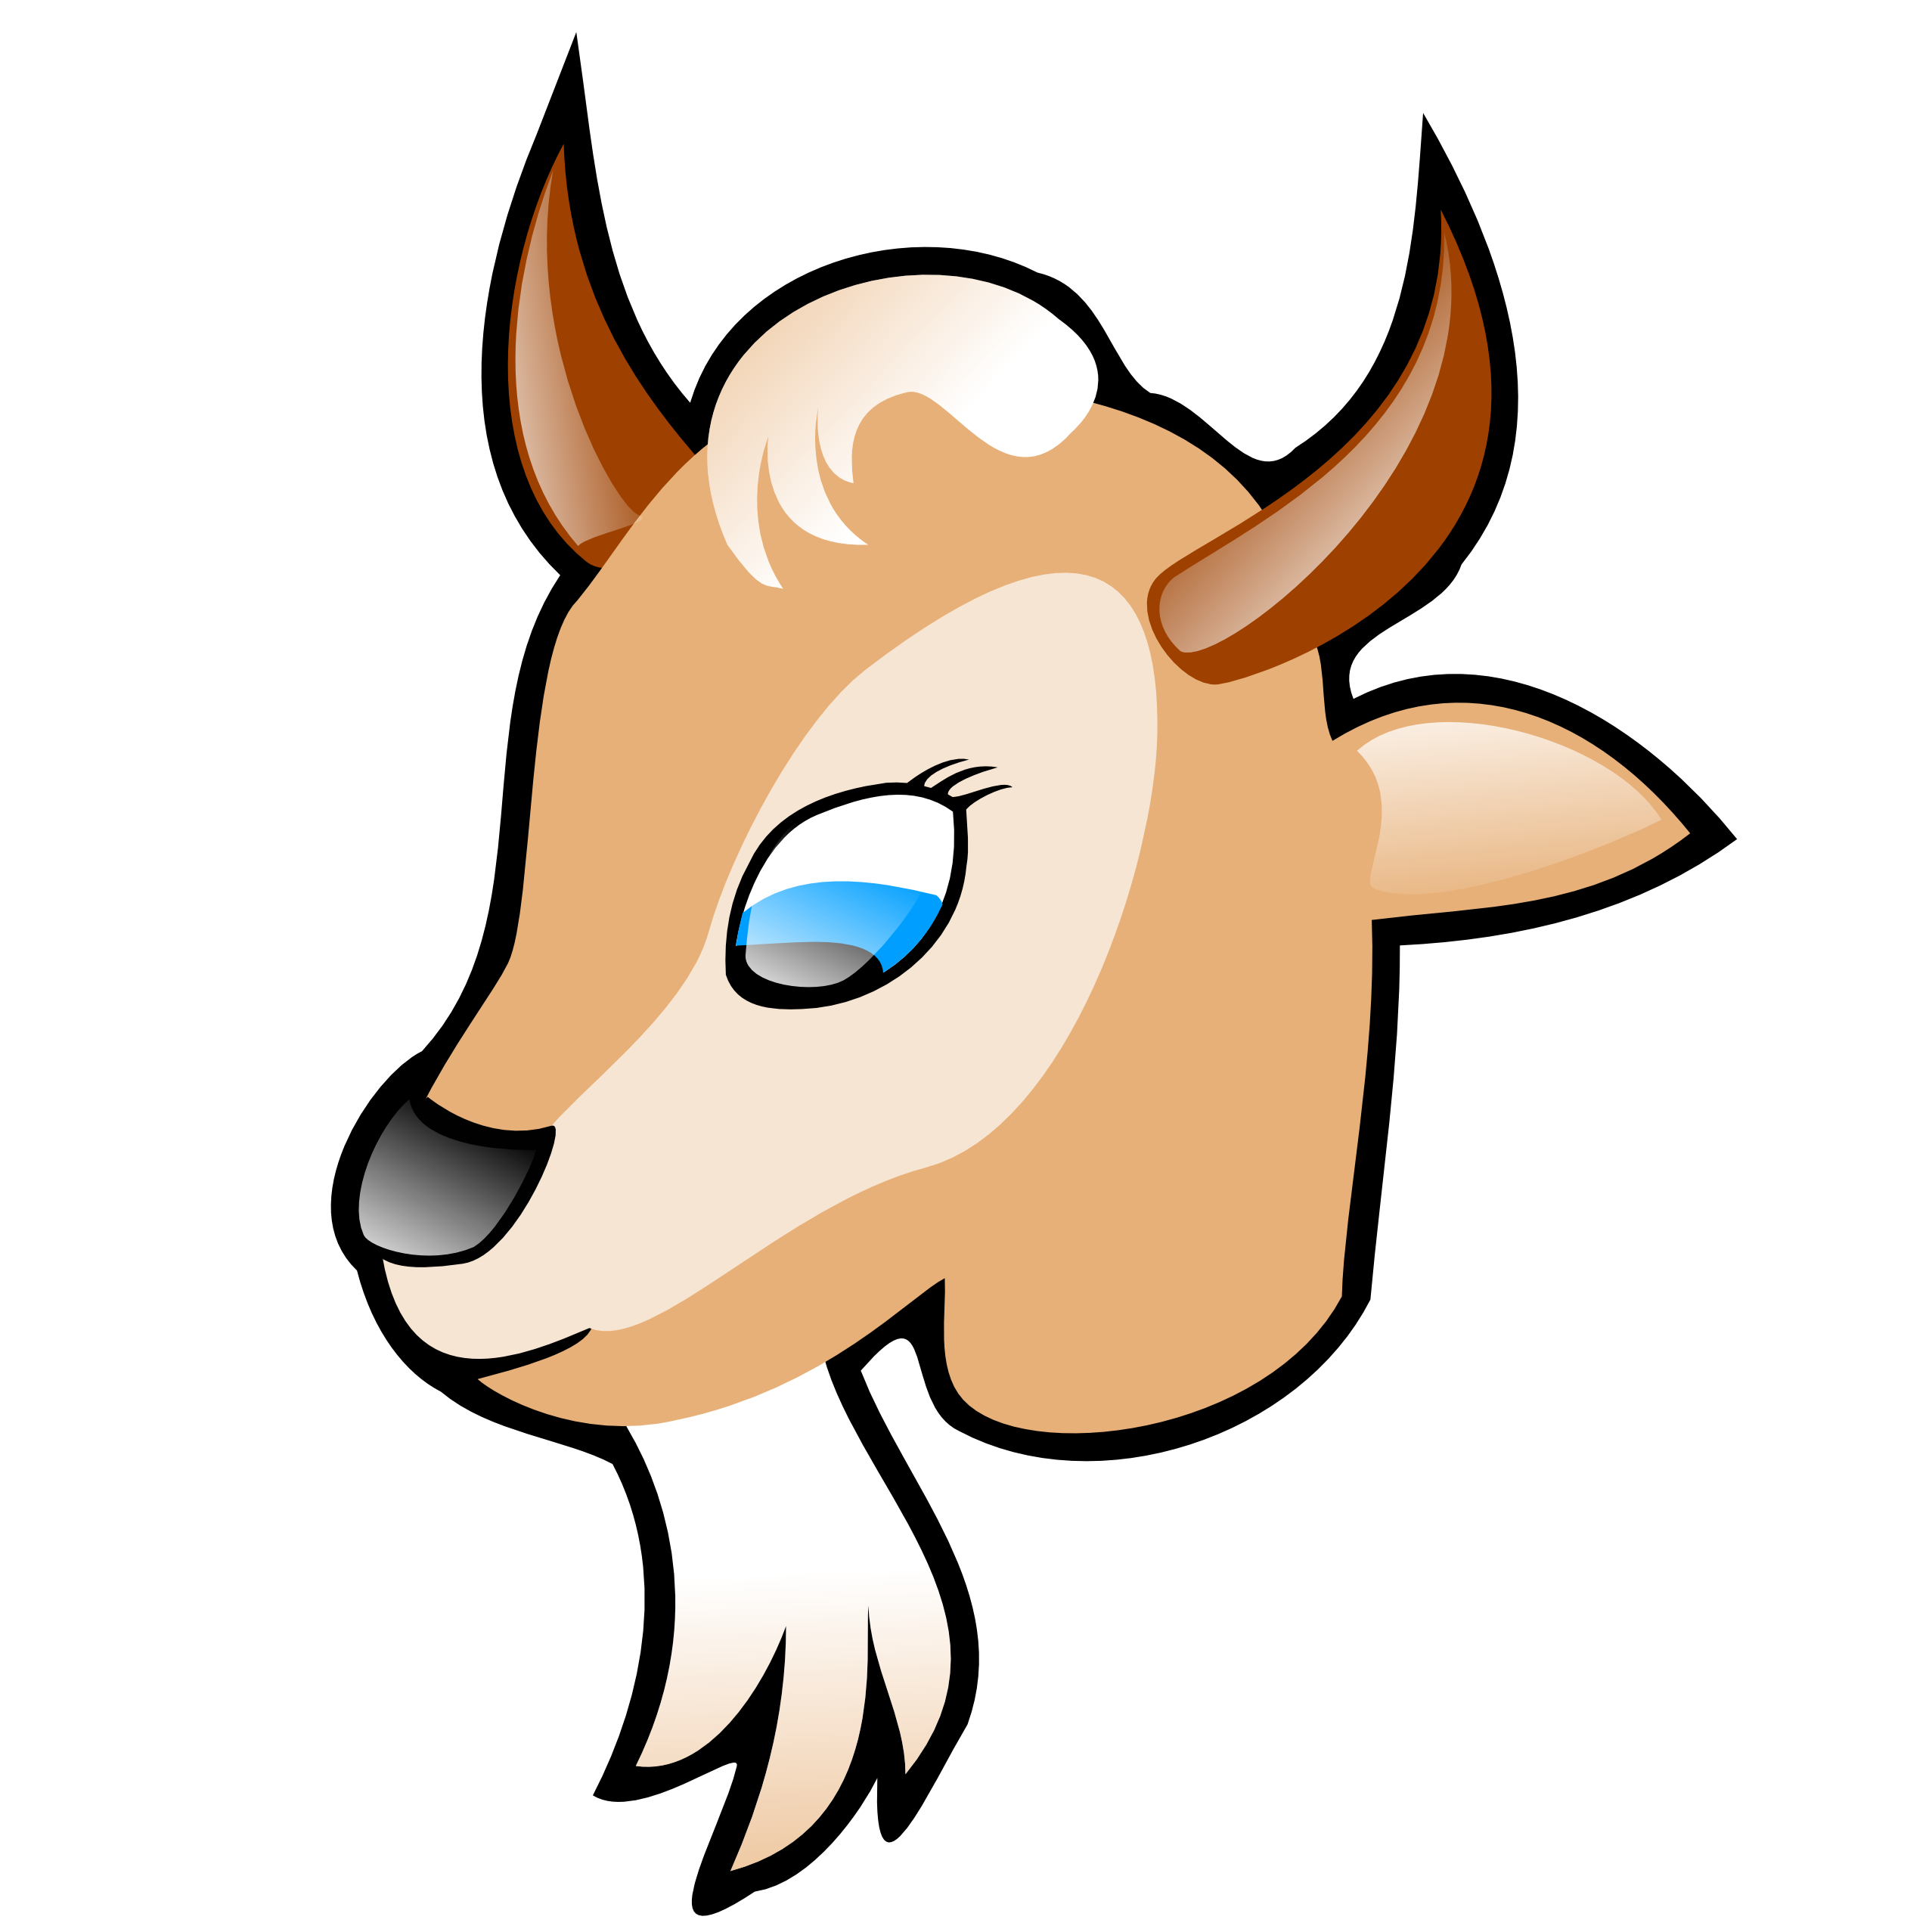 Car horn clipart graphic transparent library Billy Goat Clipart | Free download best Billy Goat Clipart on ... graphic transparent library